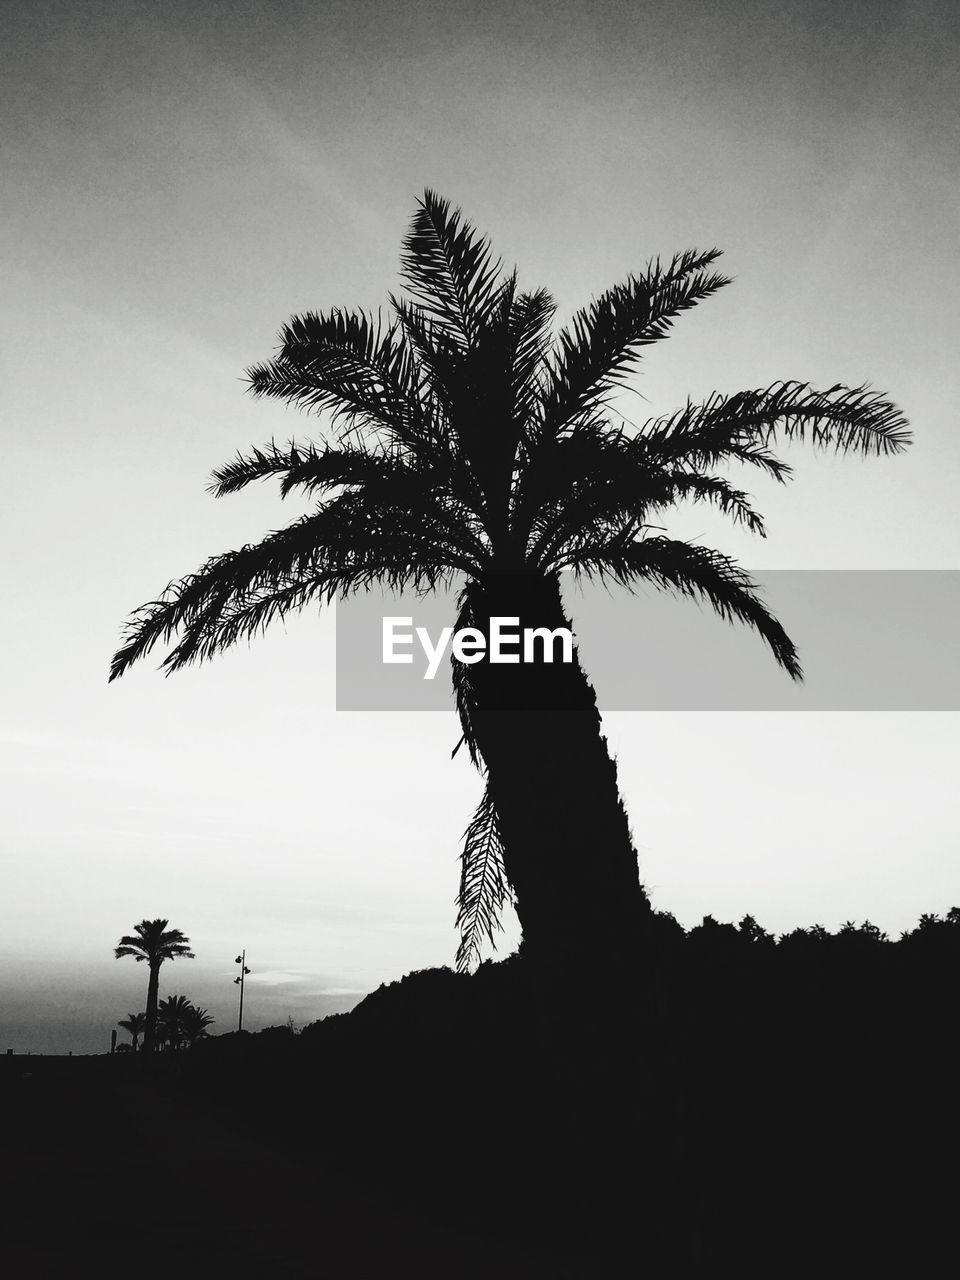 palm tree, tree, silhouette, growth, beauty in nature, tranquil scene, tranquility, scenics, nature, tree trunk, no people, outdoors, low angle view, landscape, sky, day, clear sky